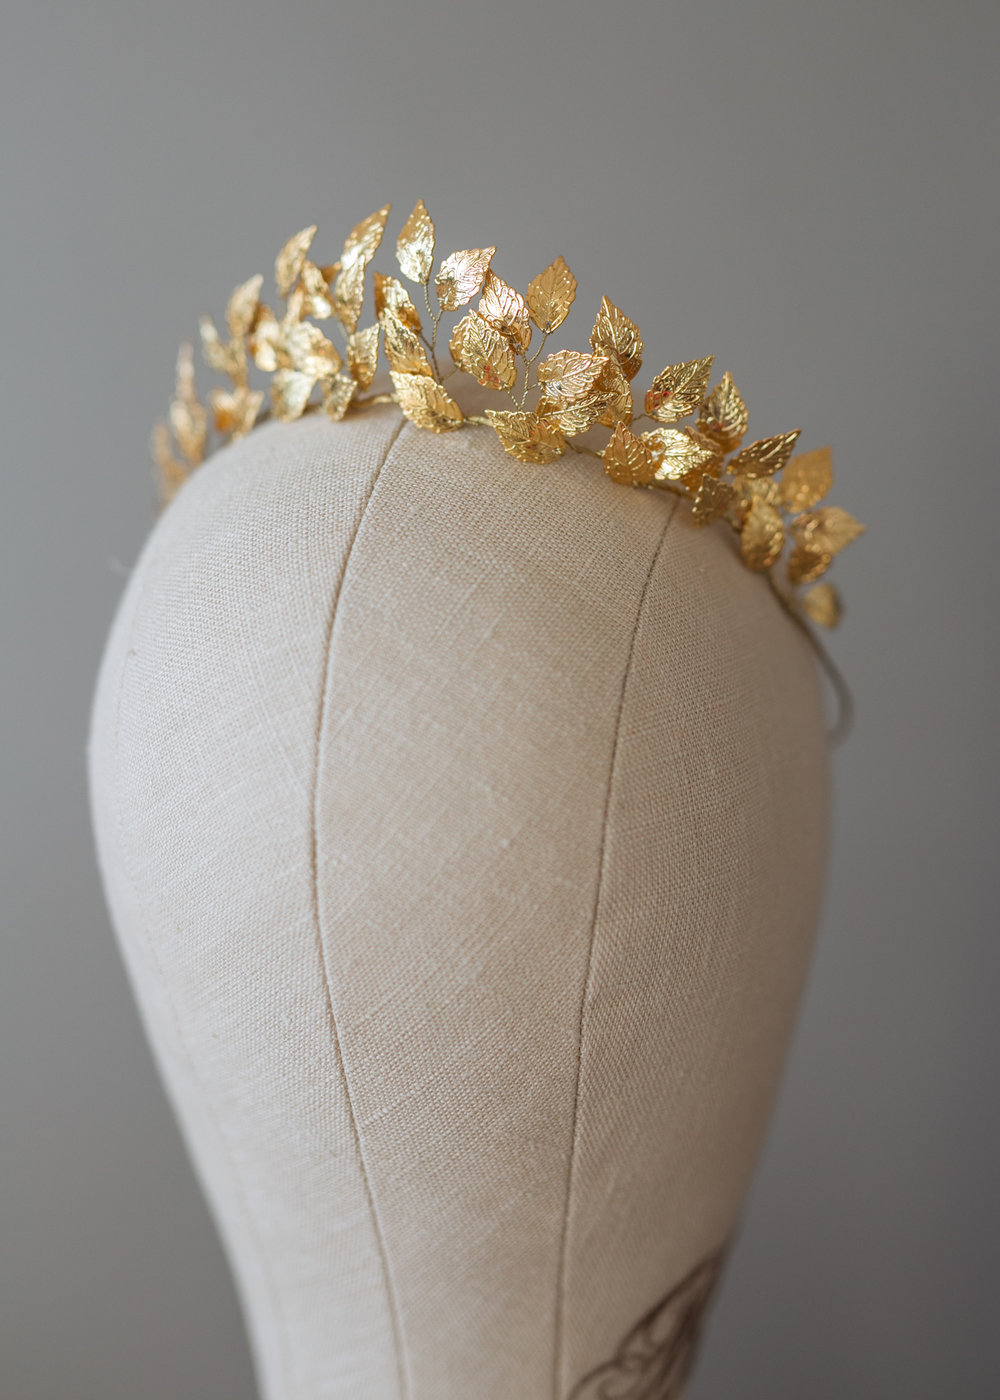 Find your perfect Gold Leaf Headband - Handmade in SwitzerlandUnique DesignPossibility to Rush OrdersFree Shipping WorldwideCustomisable OrdersFast response on your questions